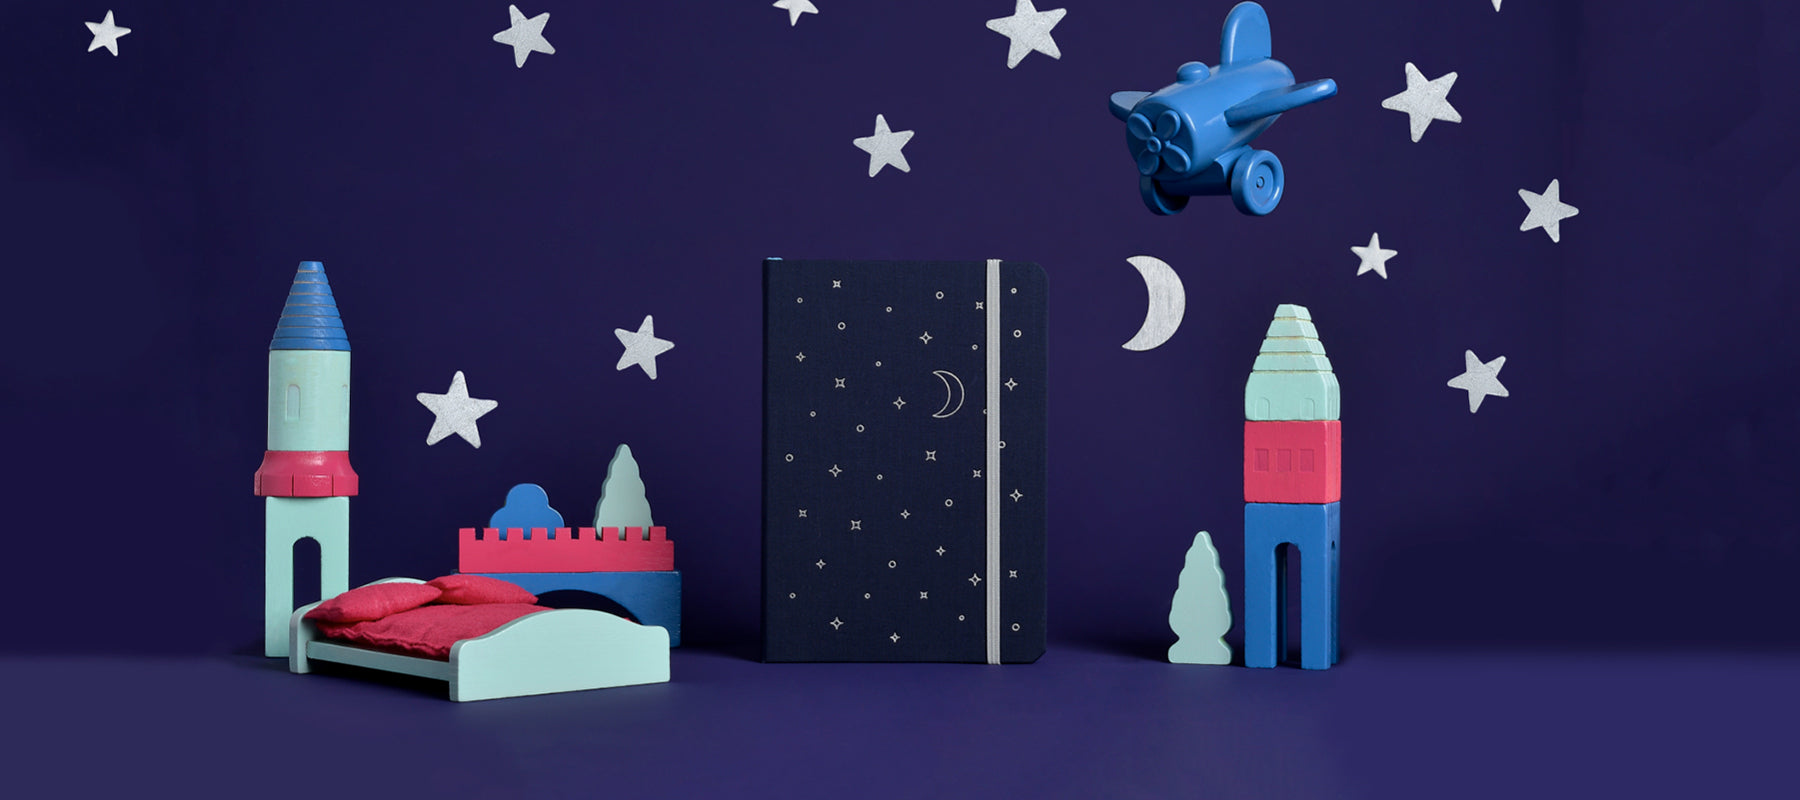 Wander dream journal with night sky backdrop